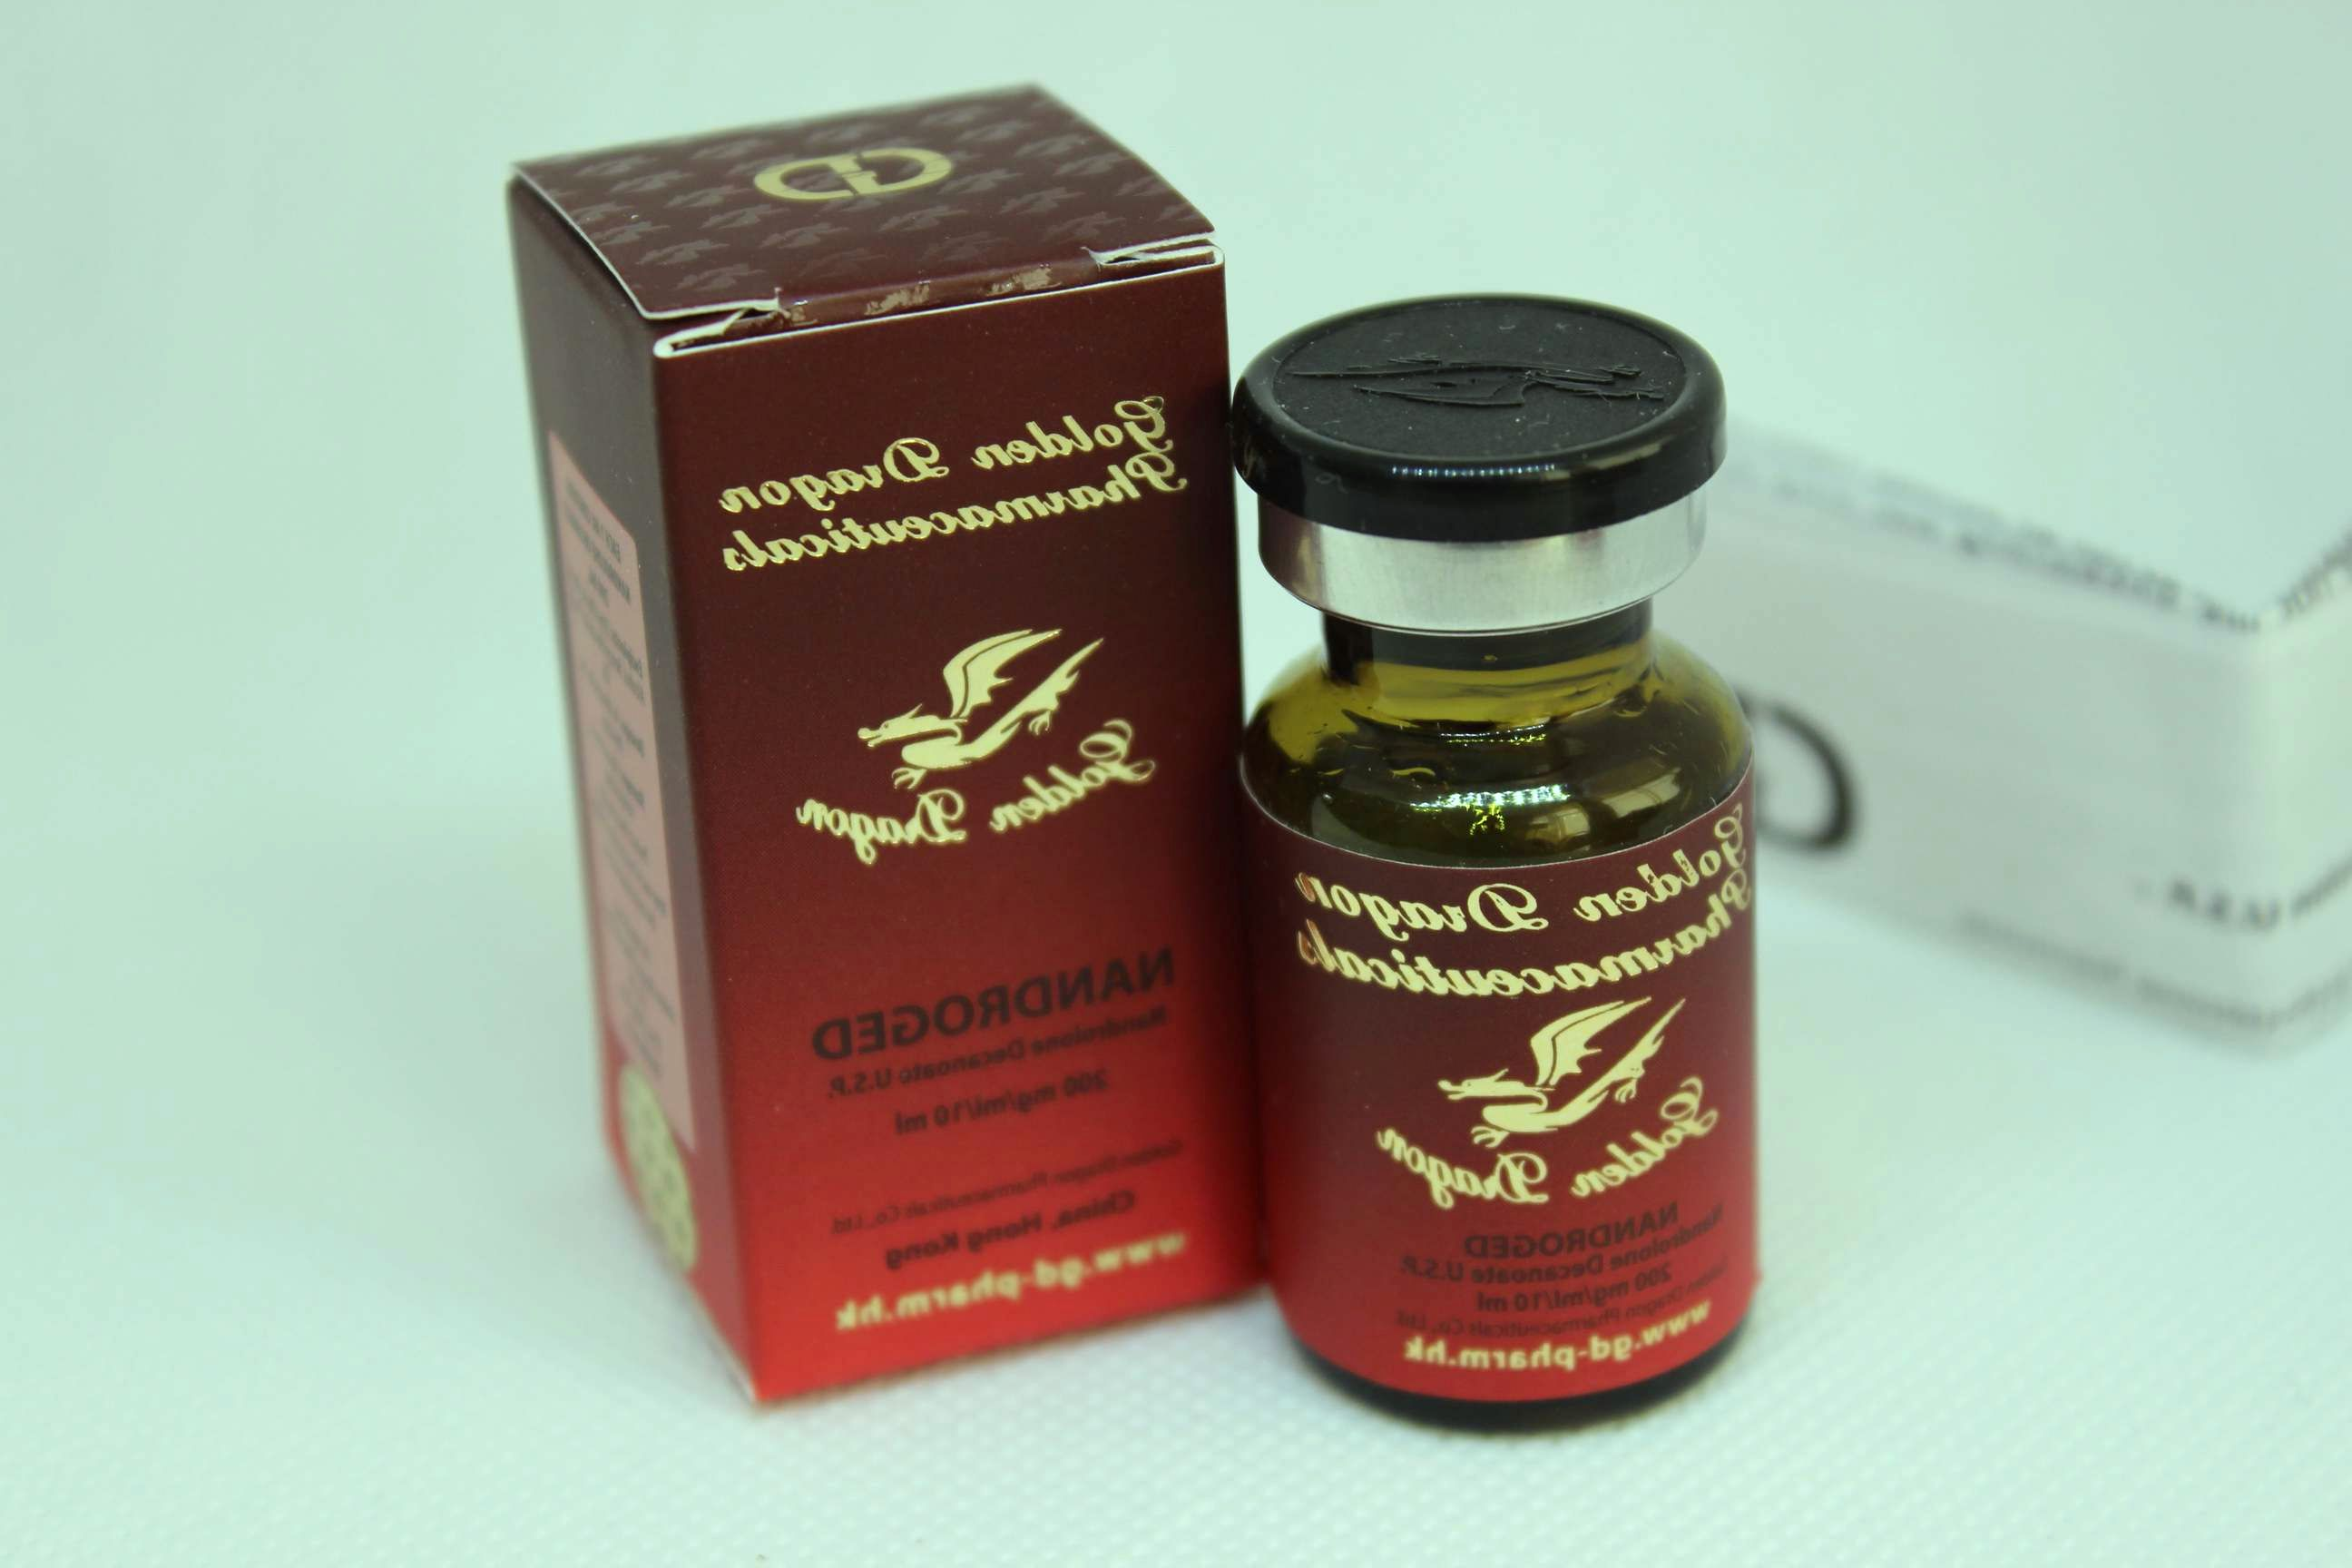 Deca Durabolin Golden Dragon Pharmaceuticals Co., Ltd 10ml/200 mg